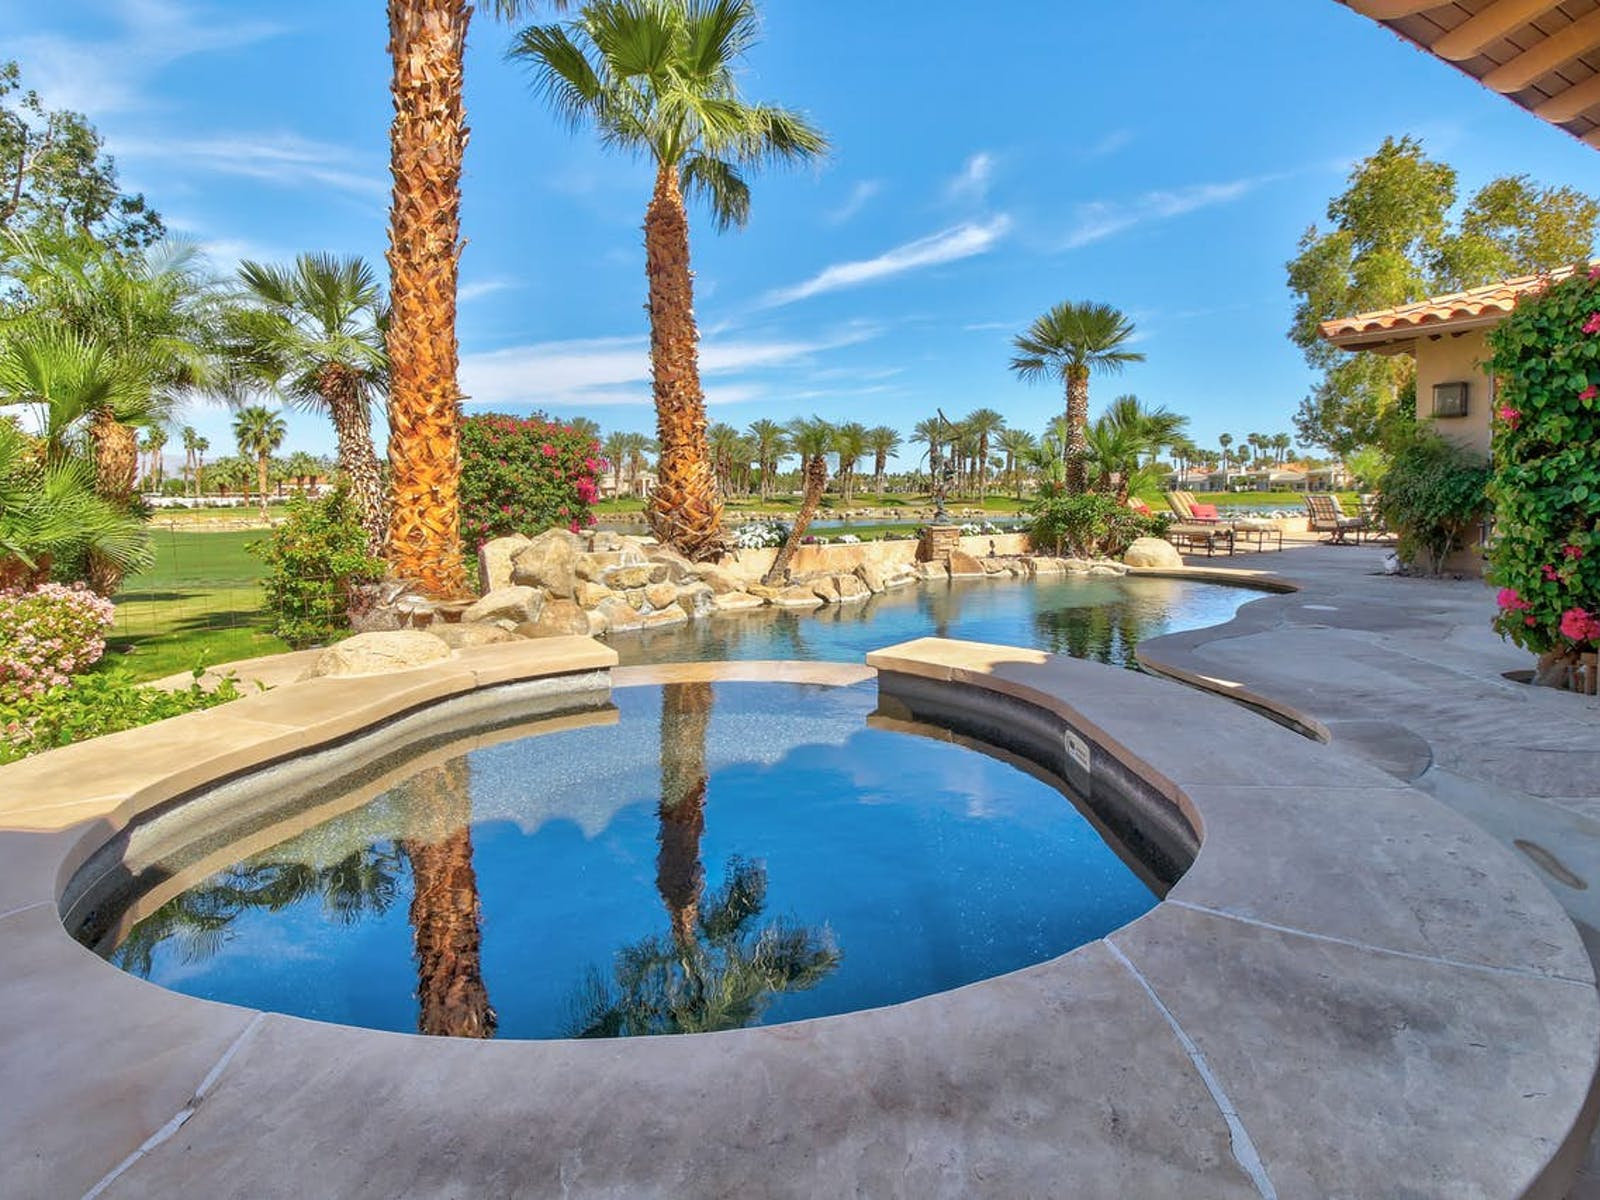 Vacation home in La Quinta with a private pool and golf course views